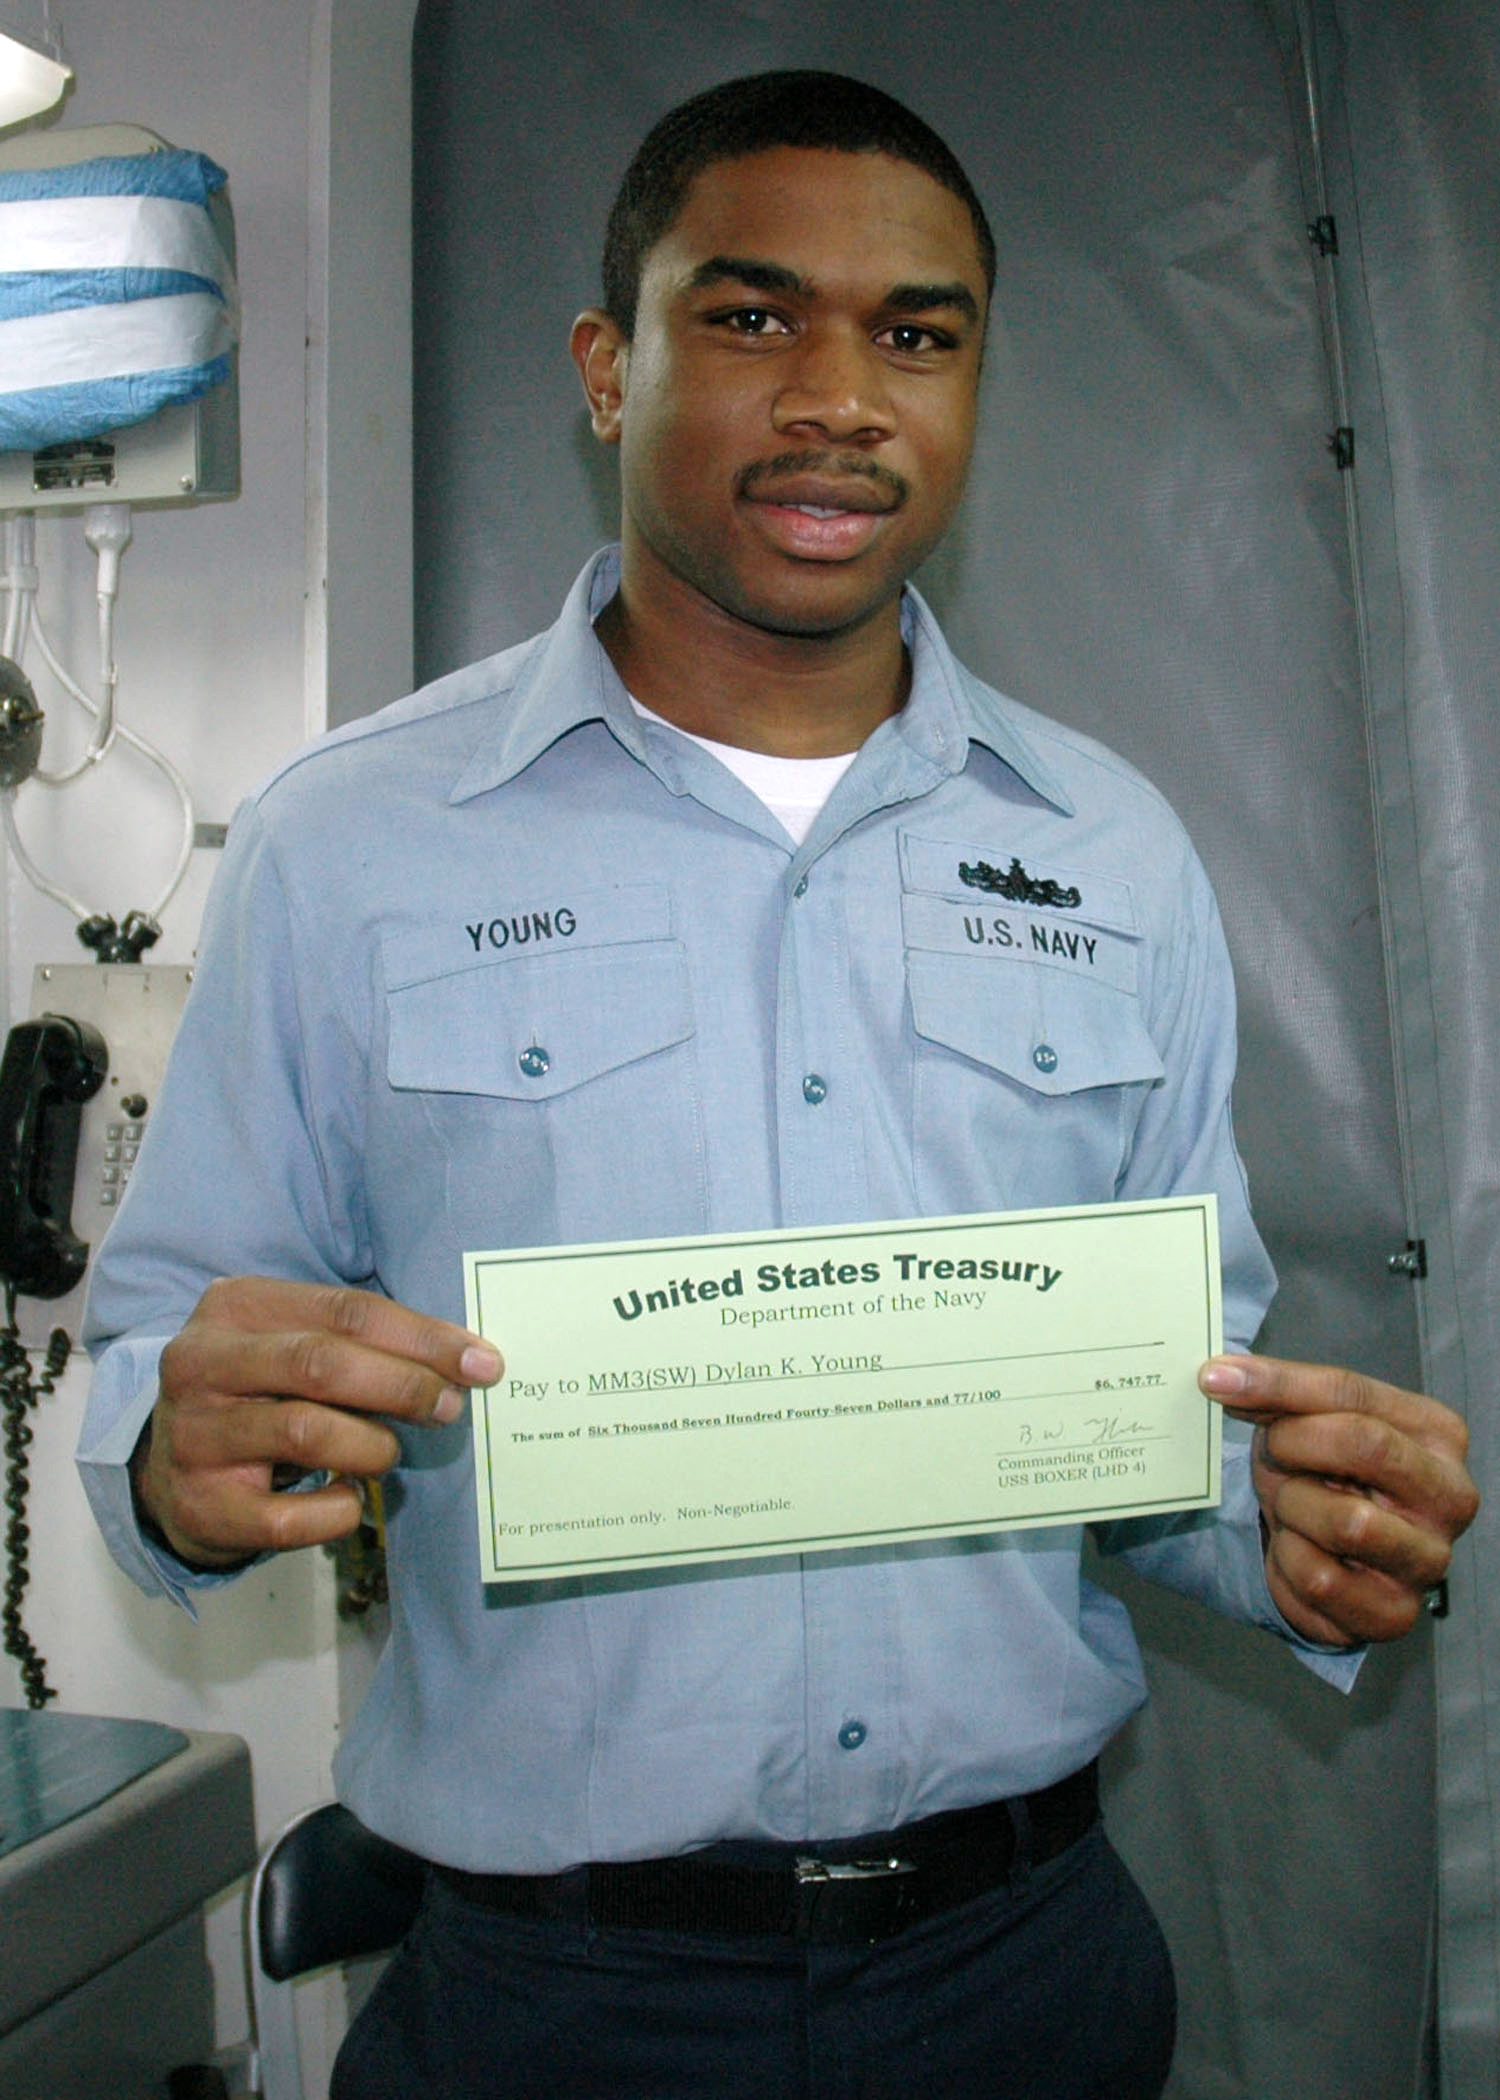 File:US Navy 070310-N-1328S-004 Machinist Mate 3rd Class Dylan ...